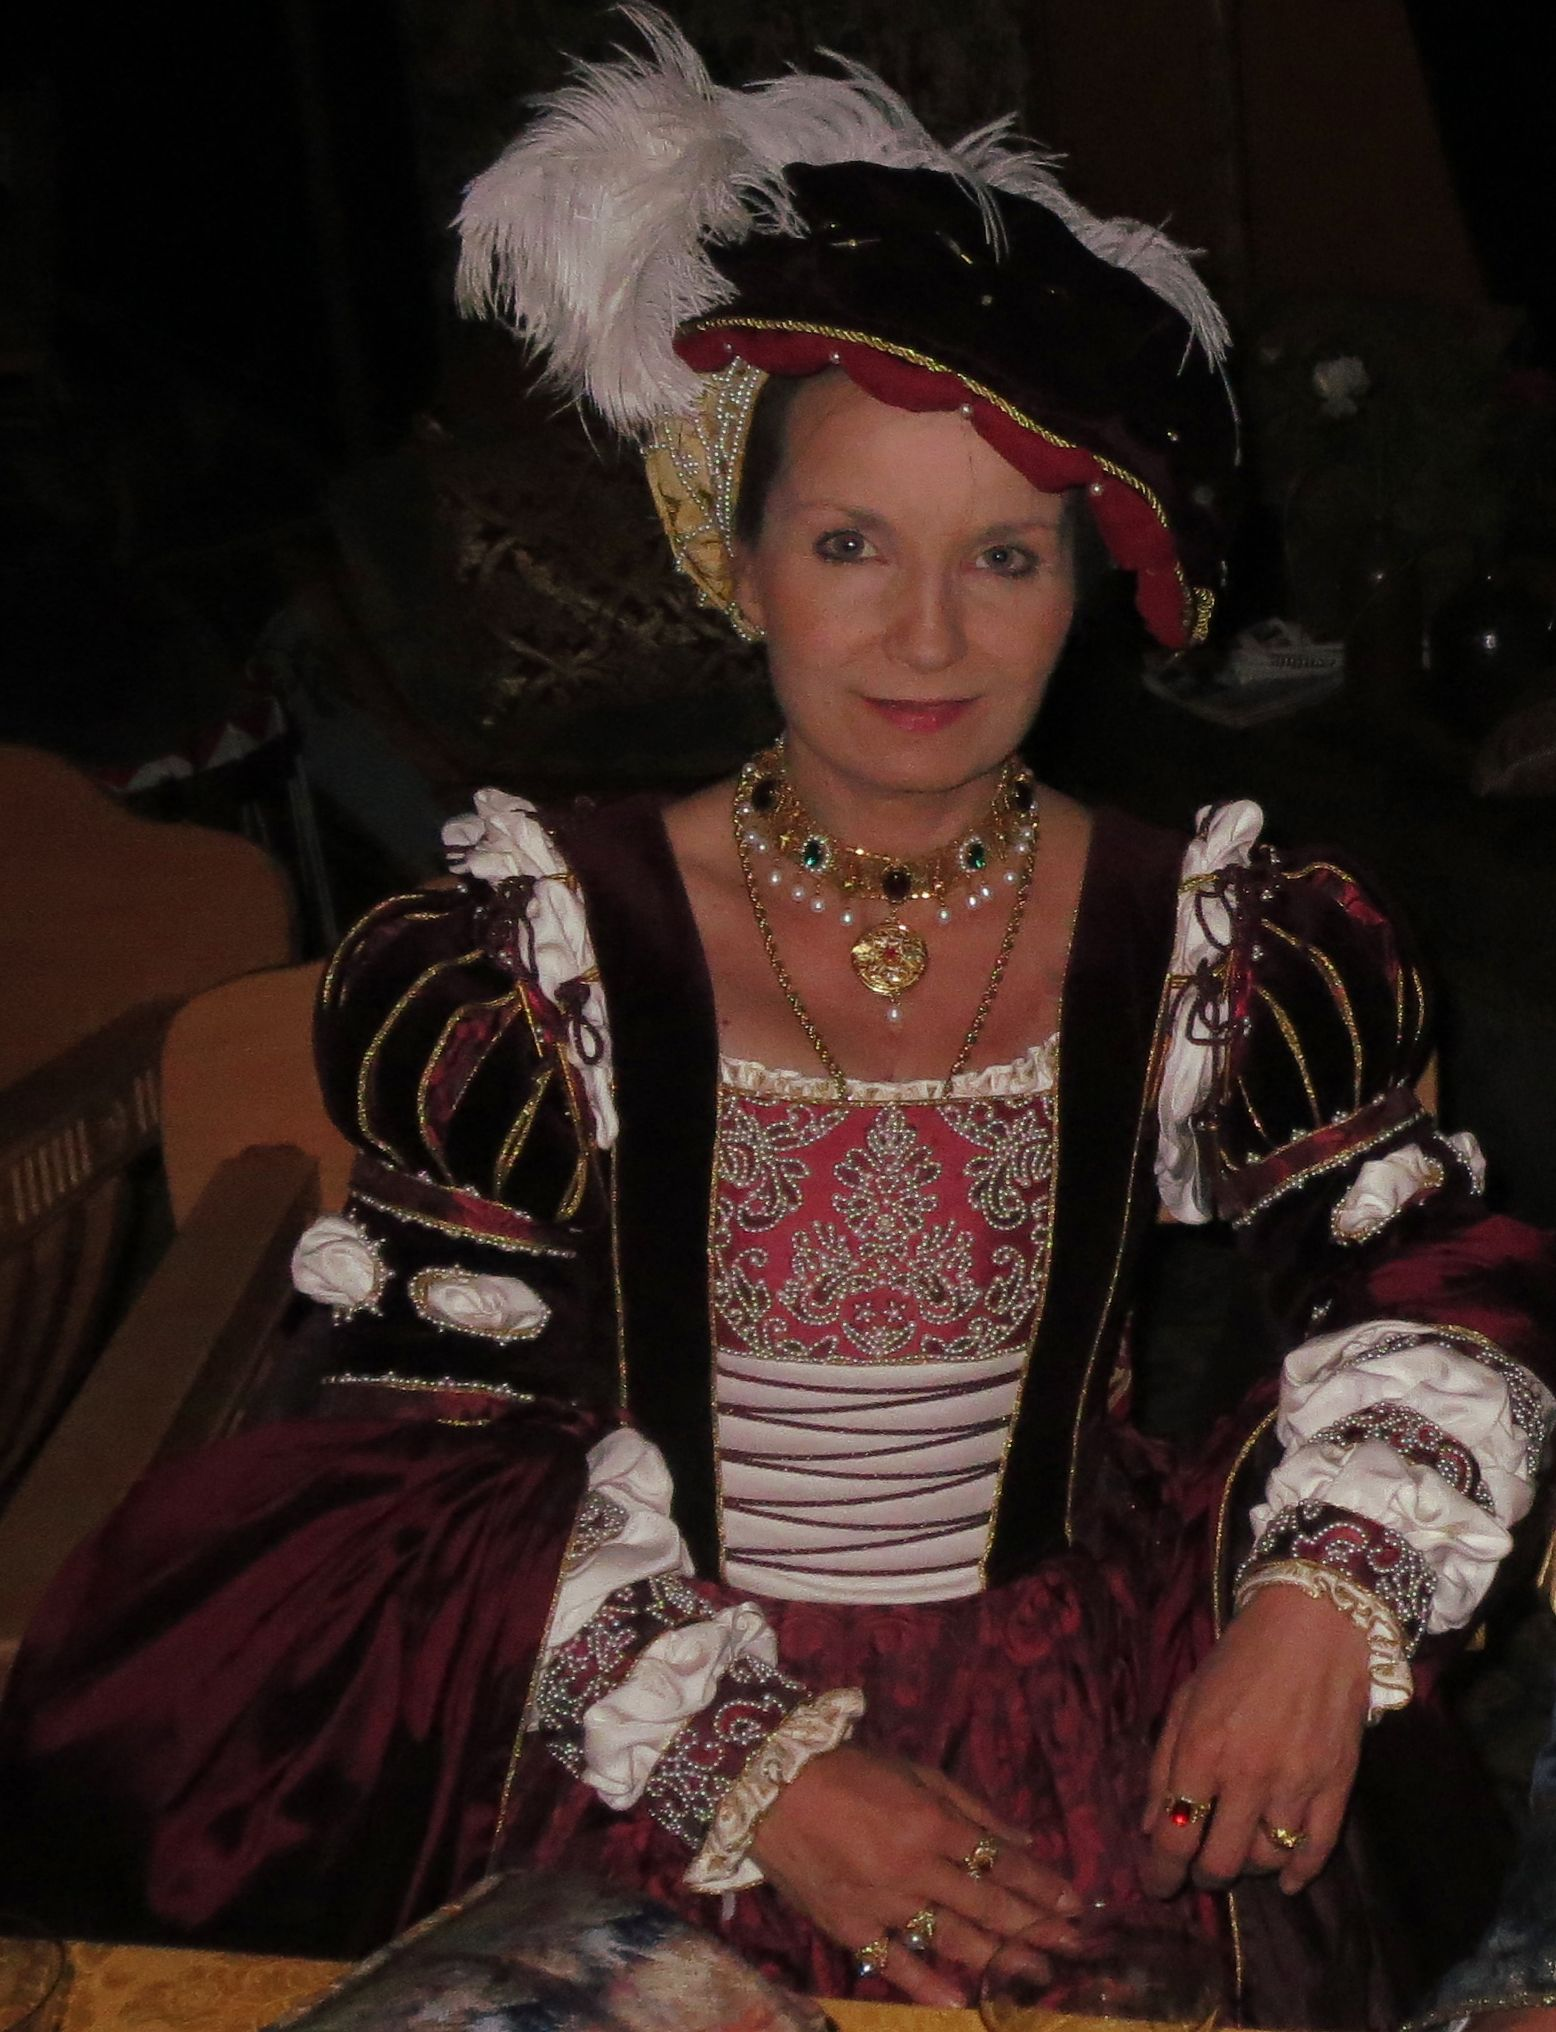 Luther S Wedding 2015 High Nobility In The Tent Of The Elector Of Saxony Barett Kleider